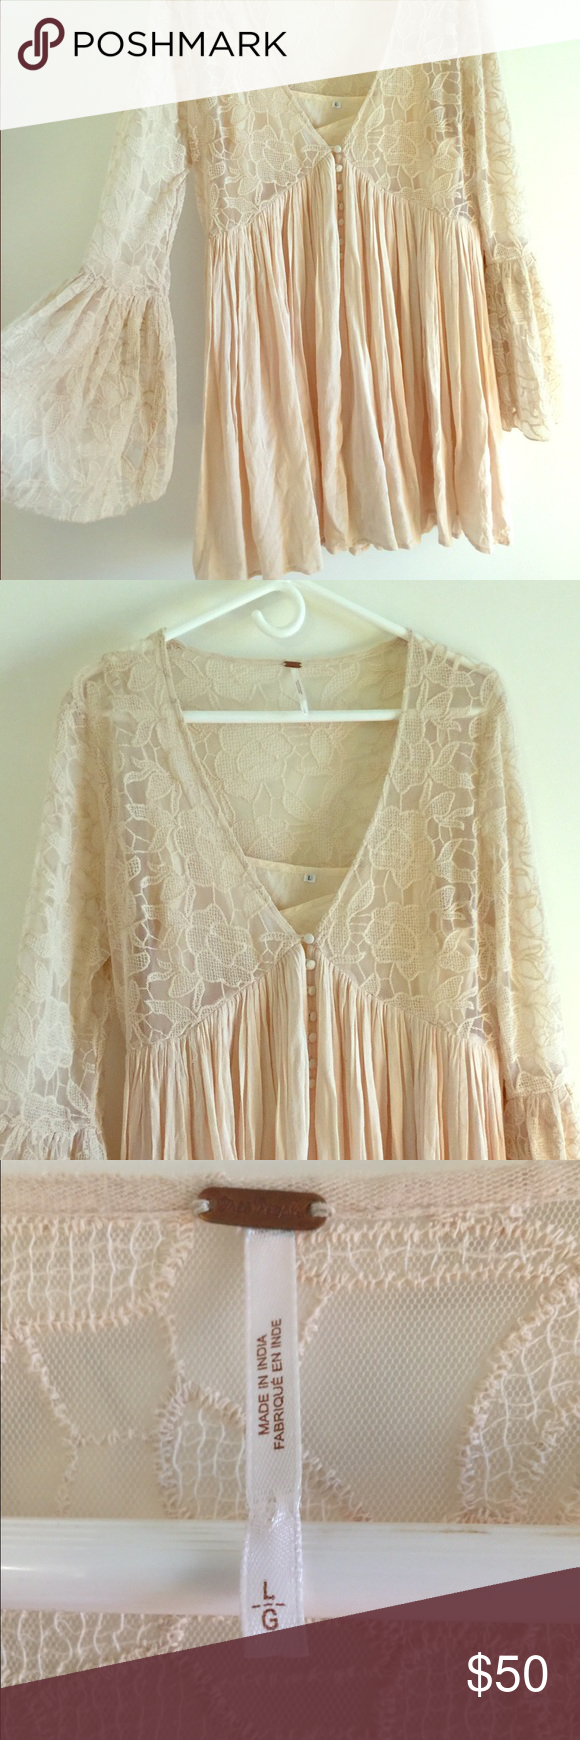 Free People Dress Size large Free People cream dress. Very boho and flowy! Comes with attached slip Free People Dresses Mini